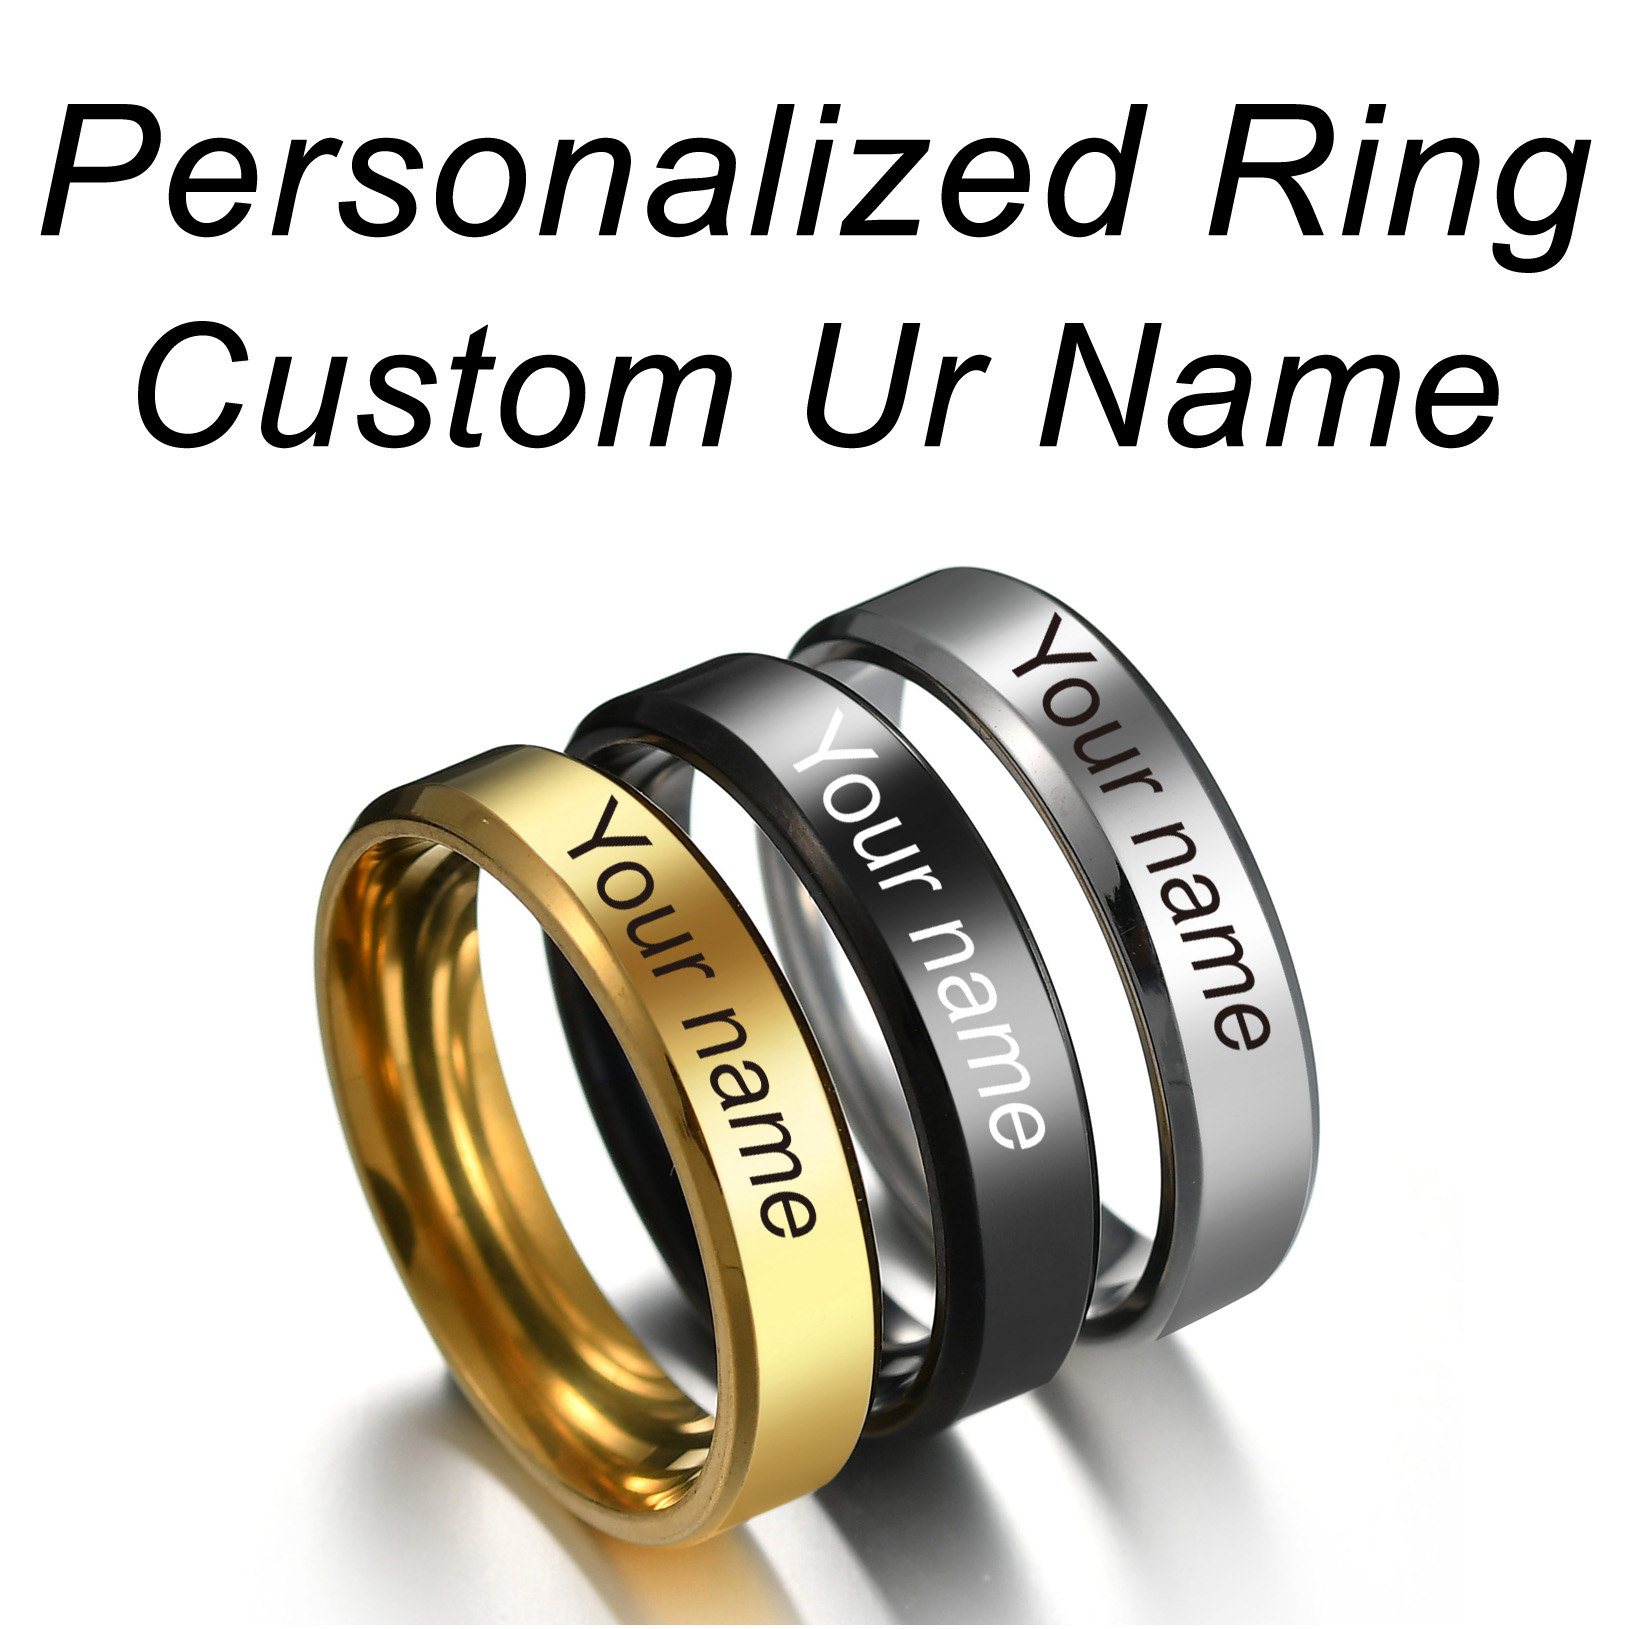 Personalized Stainless Steel Customized Rings Engraved With Your Name Texts Signature Handwriting Men Women Unisex Titanium Ring|Customized Rings| - AliExpress